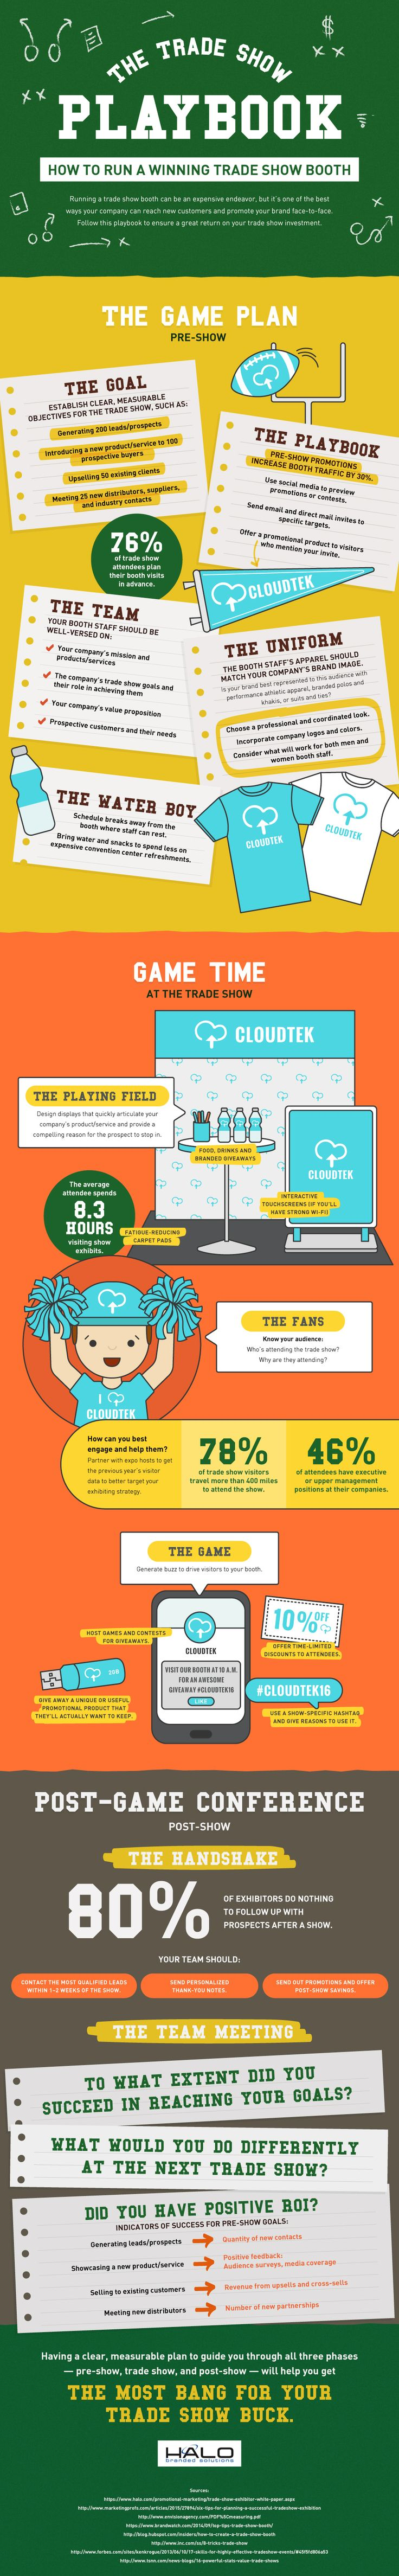 Trade Show Marketing Playbook #infographic